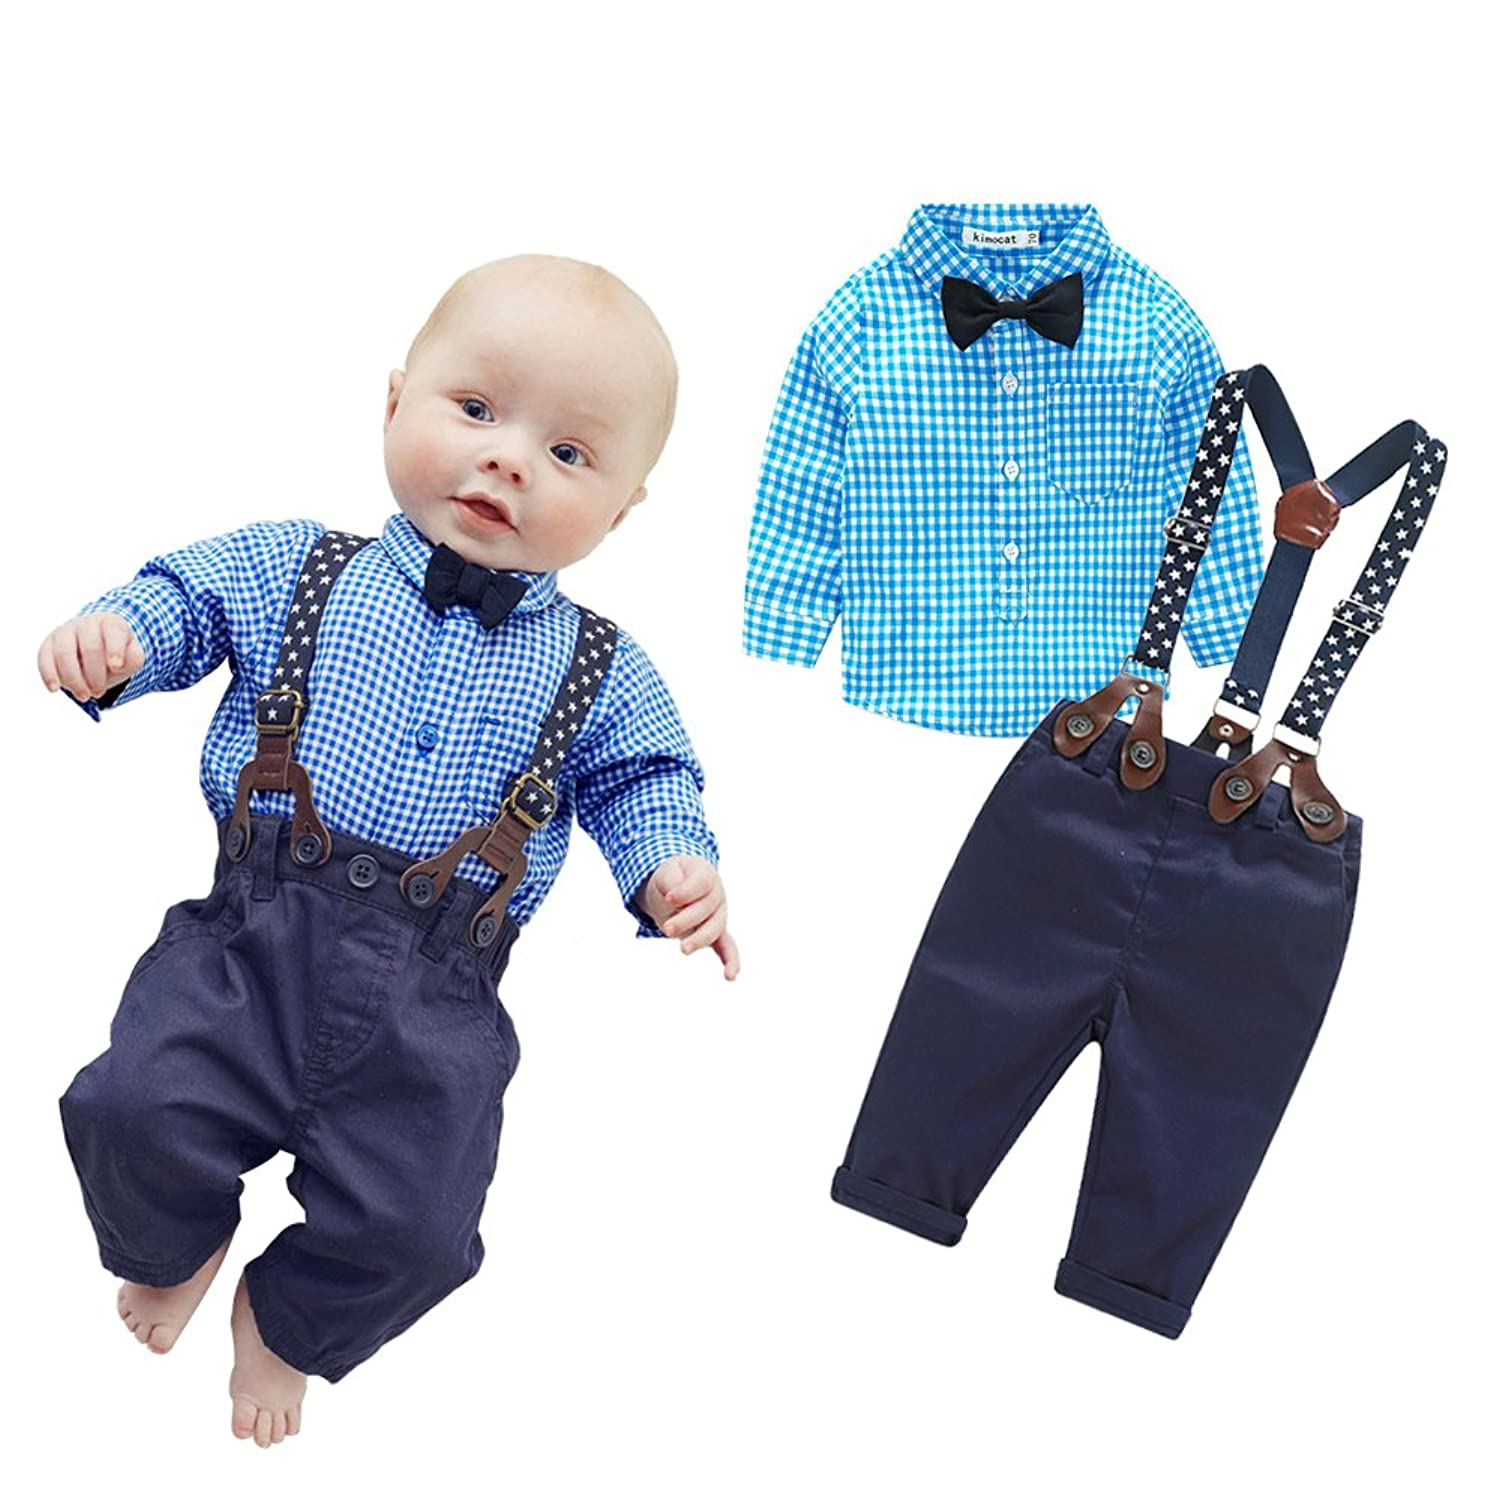 Amazon.com: Top and Top 2 Pieces Baby Boys Long Sleeve Plaid Shirt ...